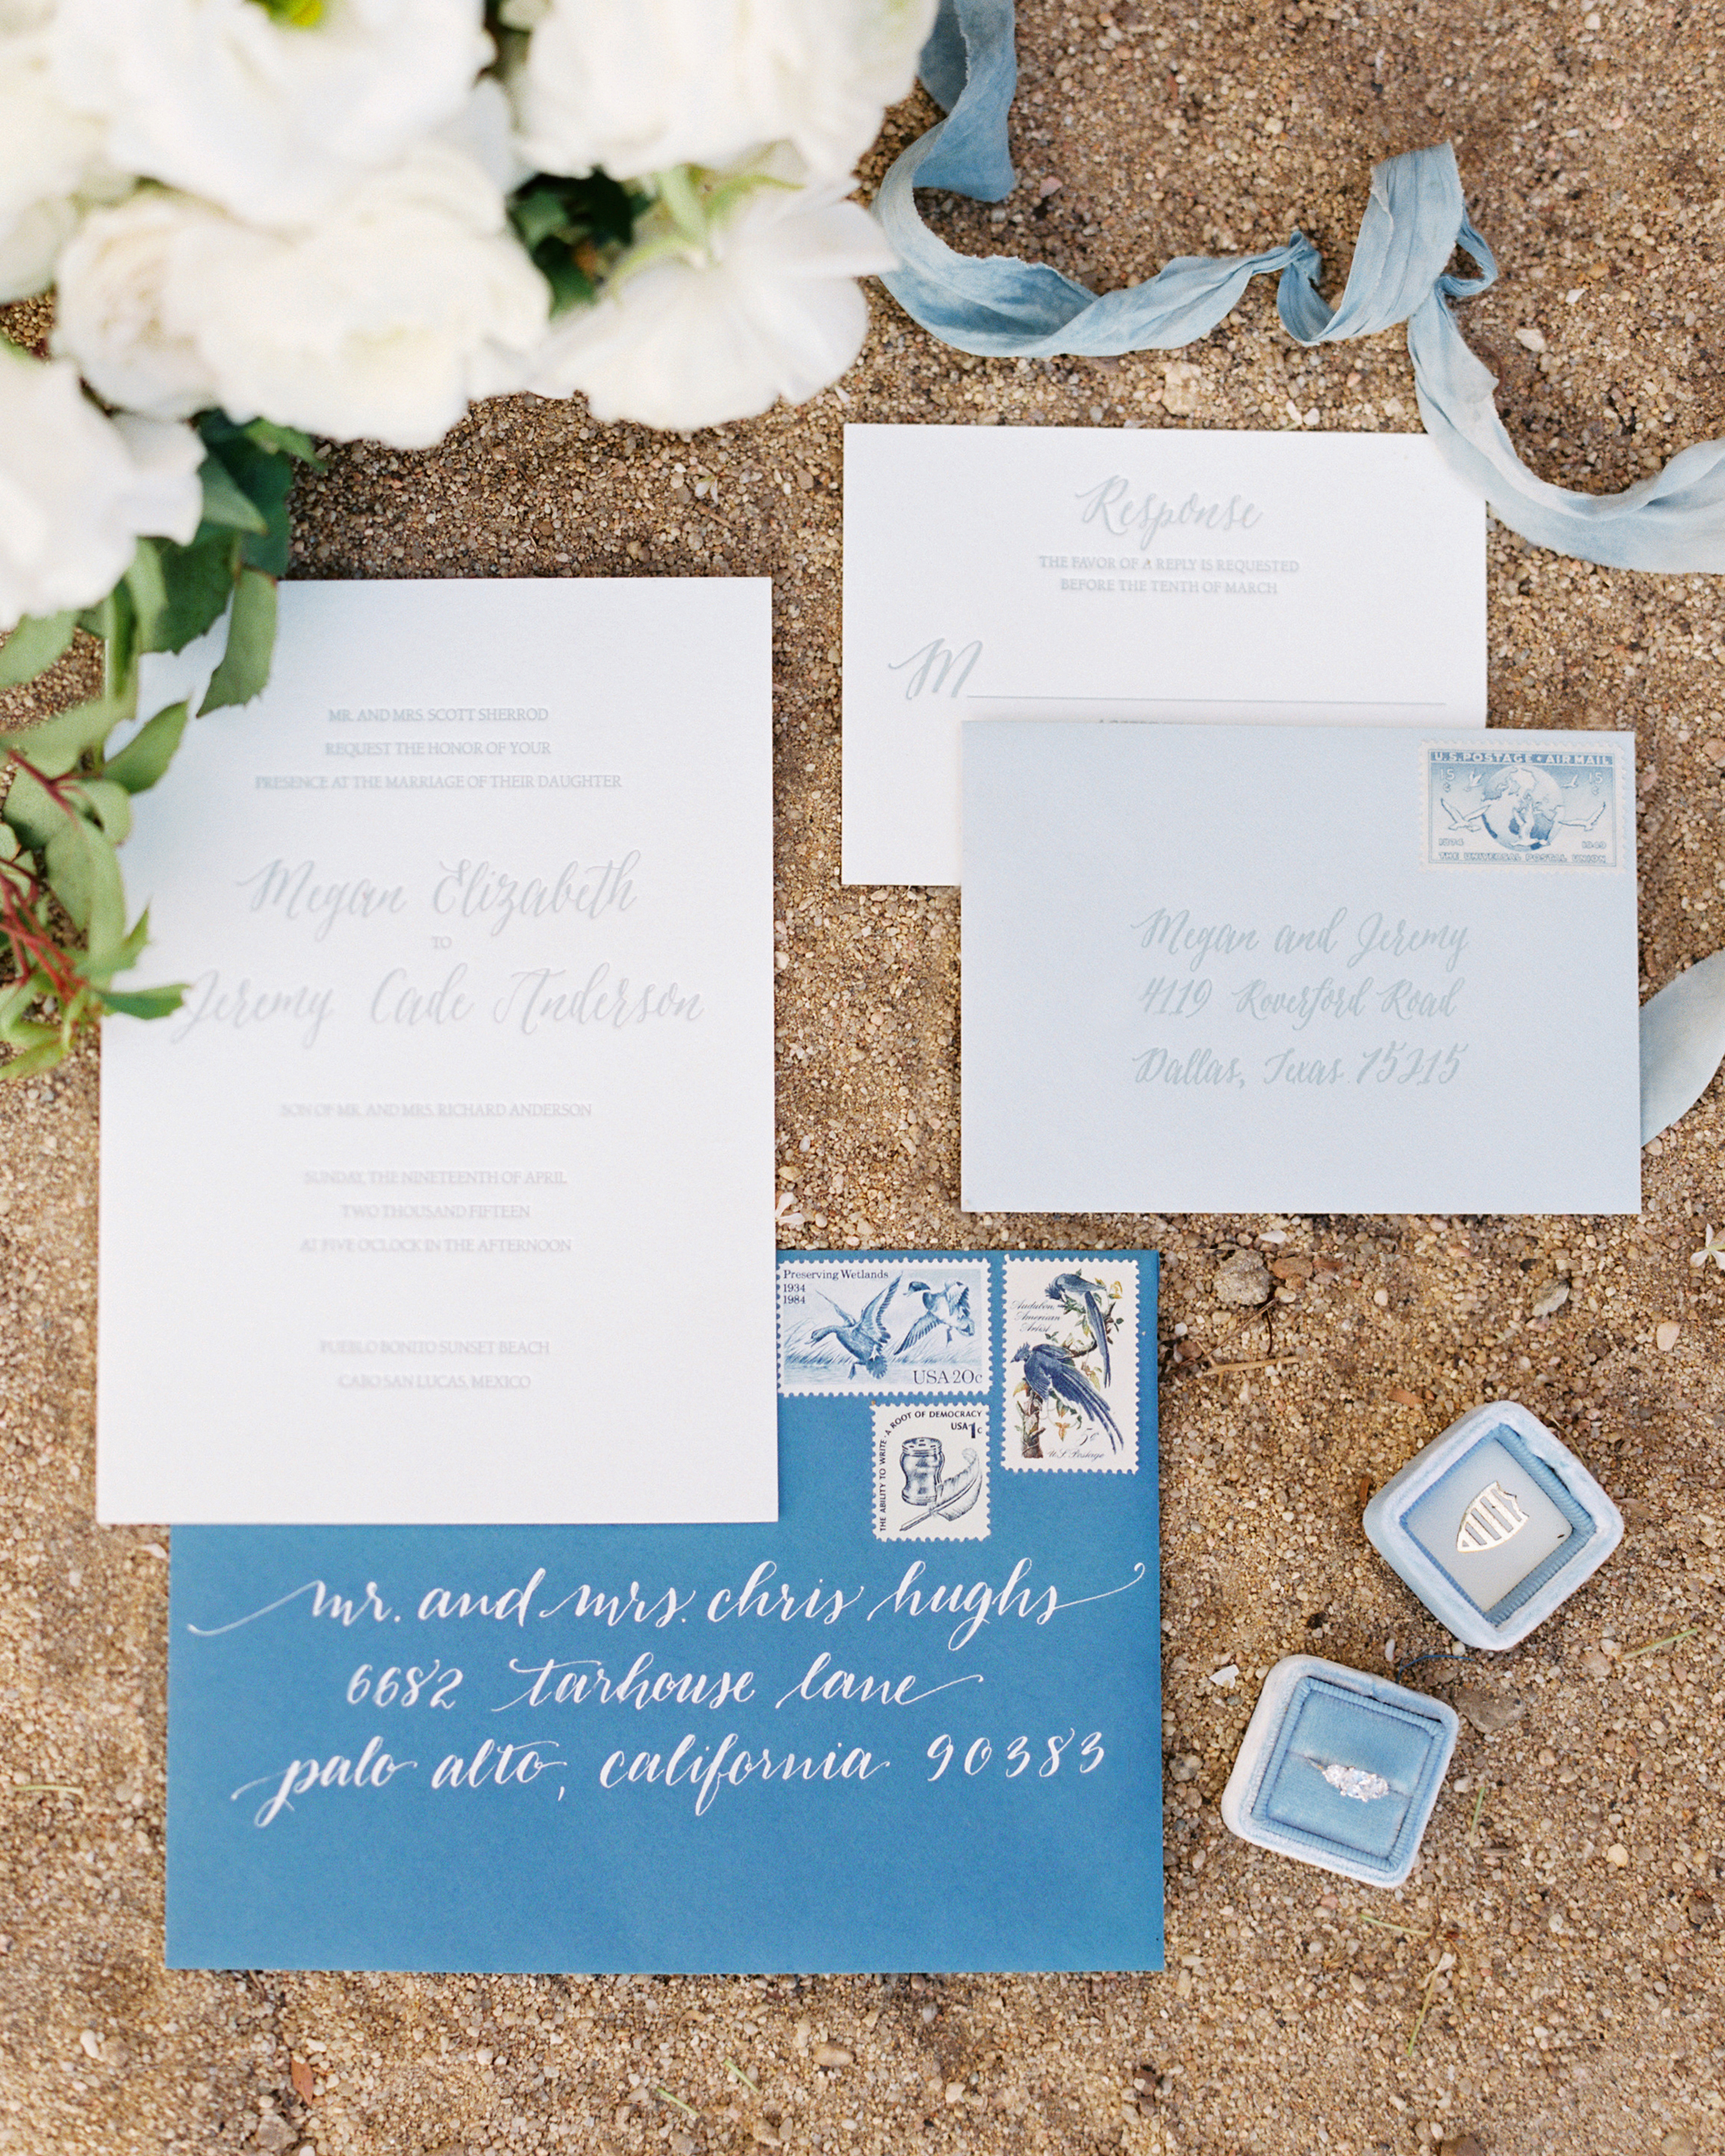 megan-jeremy-wedding-invite-06-s112680-0216.jpg